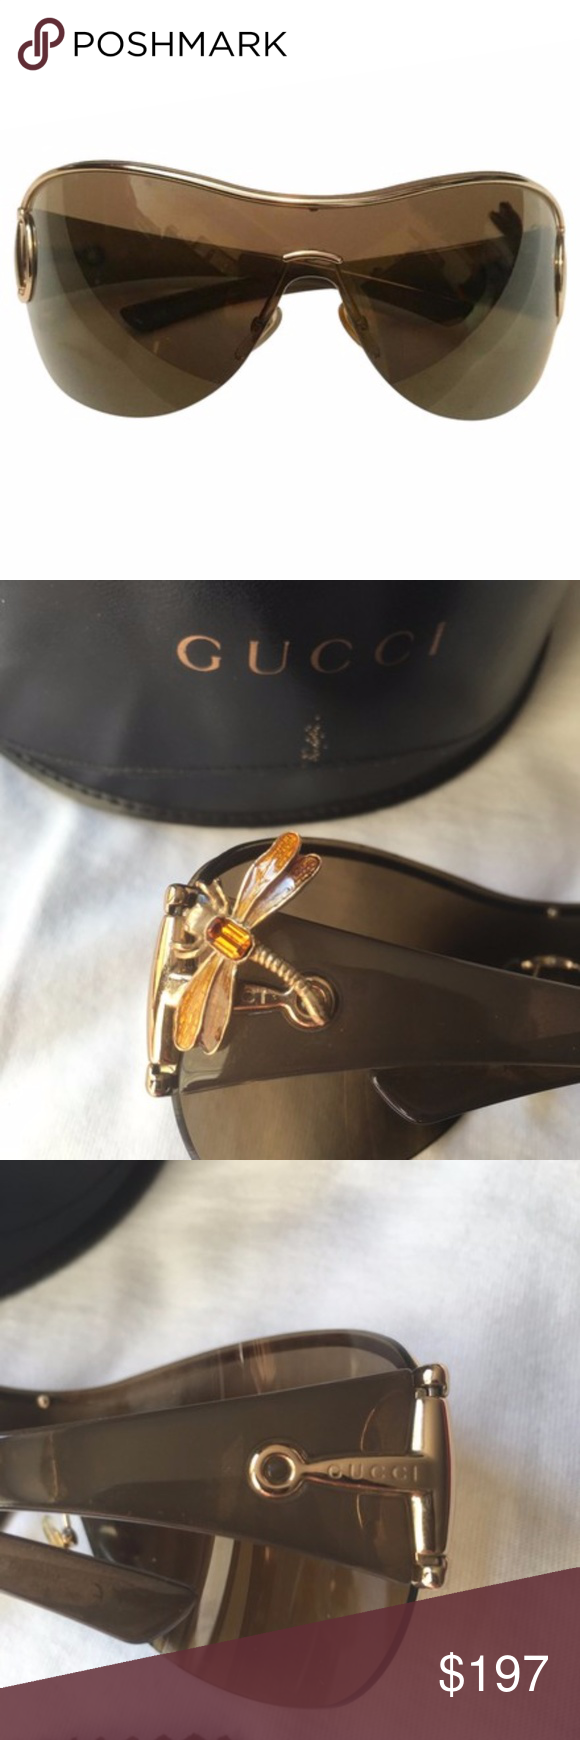 c86b3f17224 😎⚡️GUCCI  Rare  Horsebit Dragonfly Sunglasses Authentic RARE Gucci  Horsebit Dragonfly shield sunglasses in Amber   Gold. These chic shades  feature ...